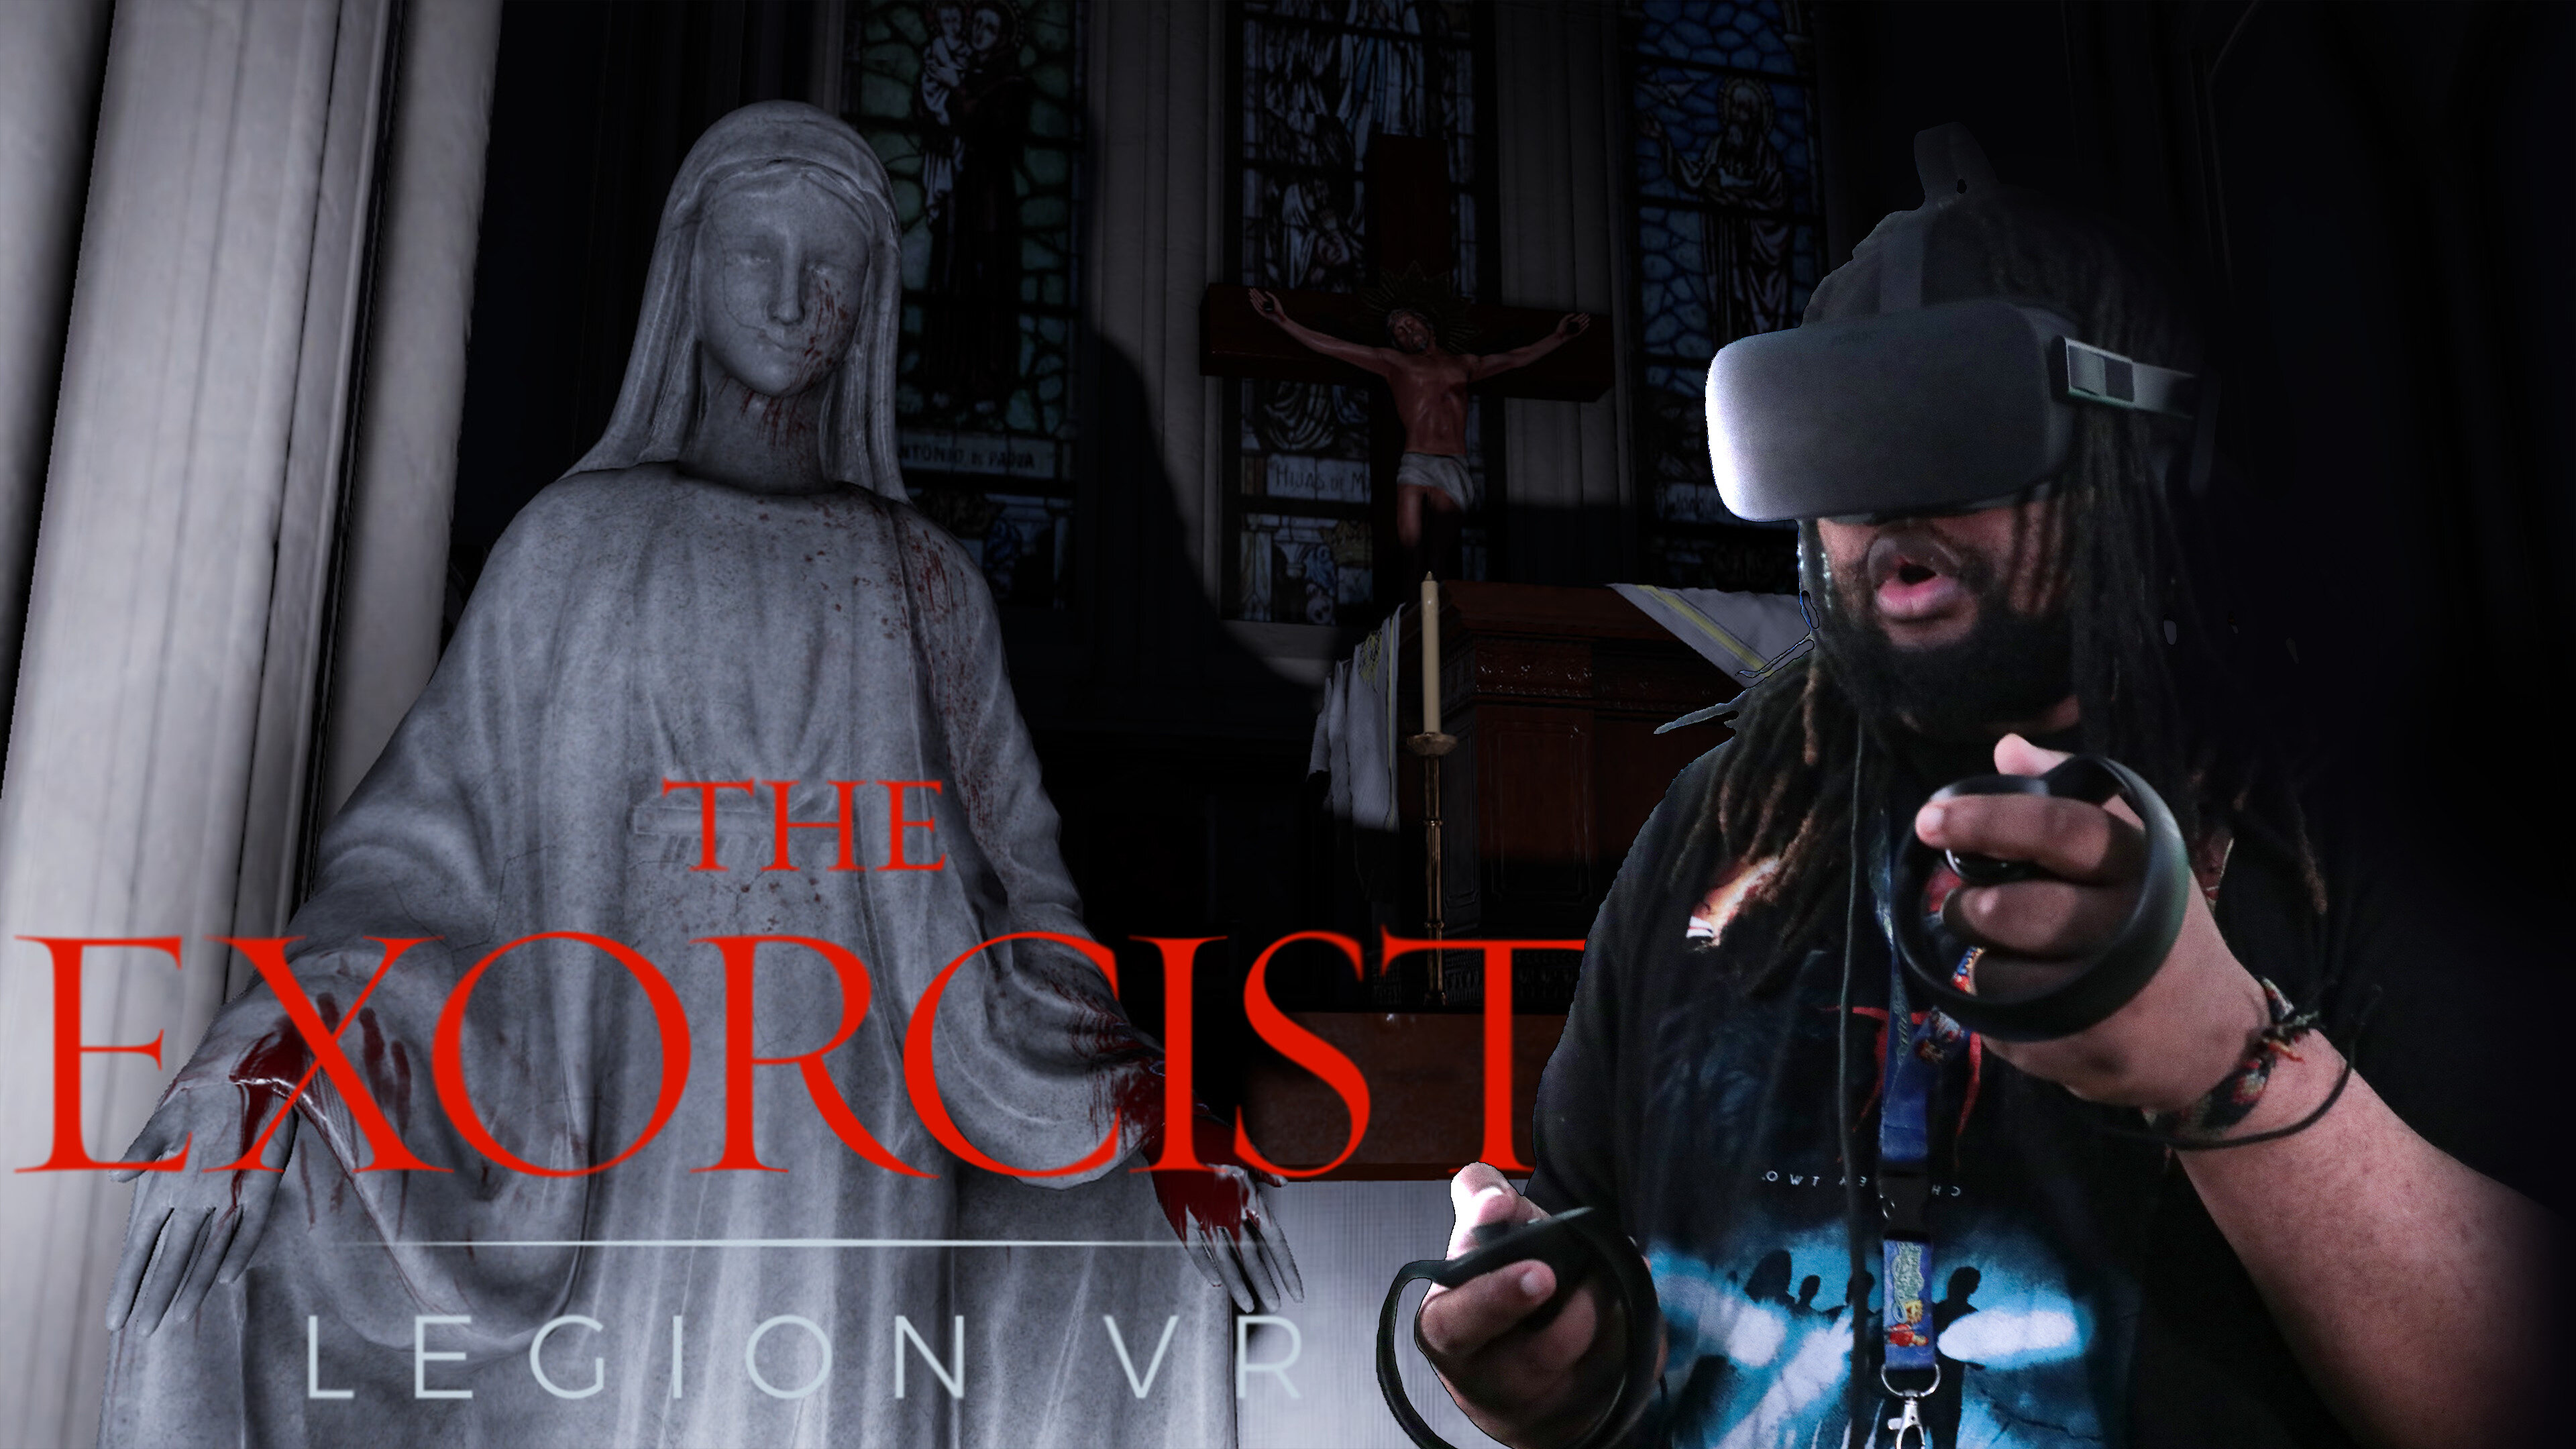 Flam's VR The Exorcist